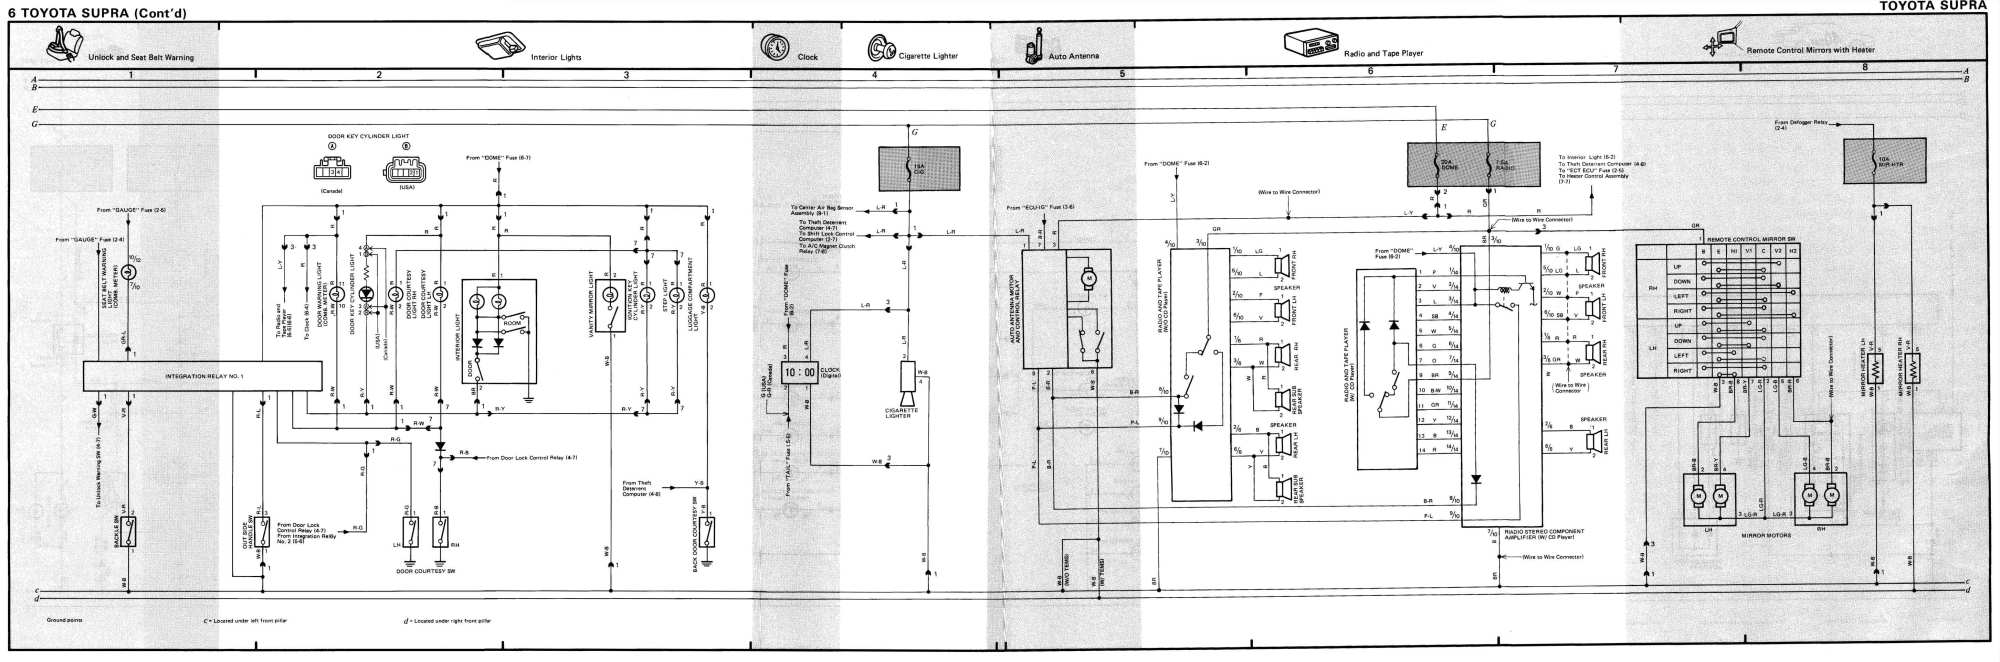 hight resolution of 87 supra wiring diagram wiring diagram for you 1989 supra turbo engine diagram wiring diagram expert